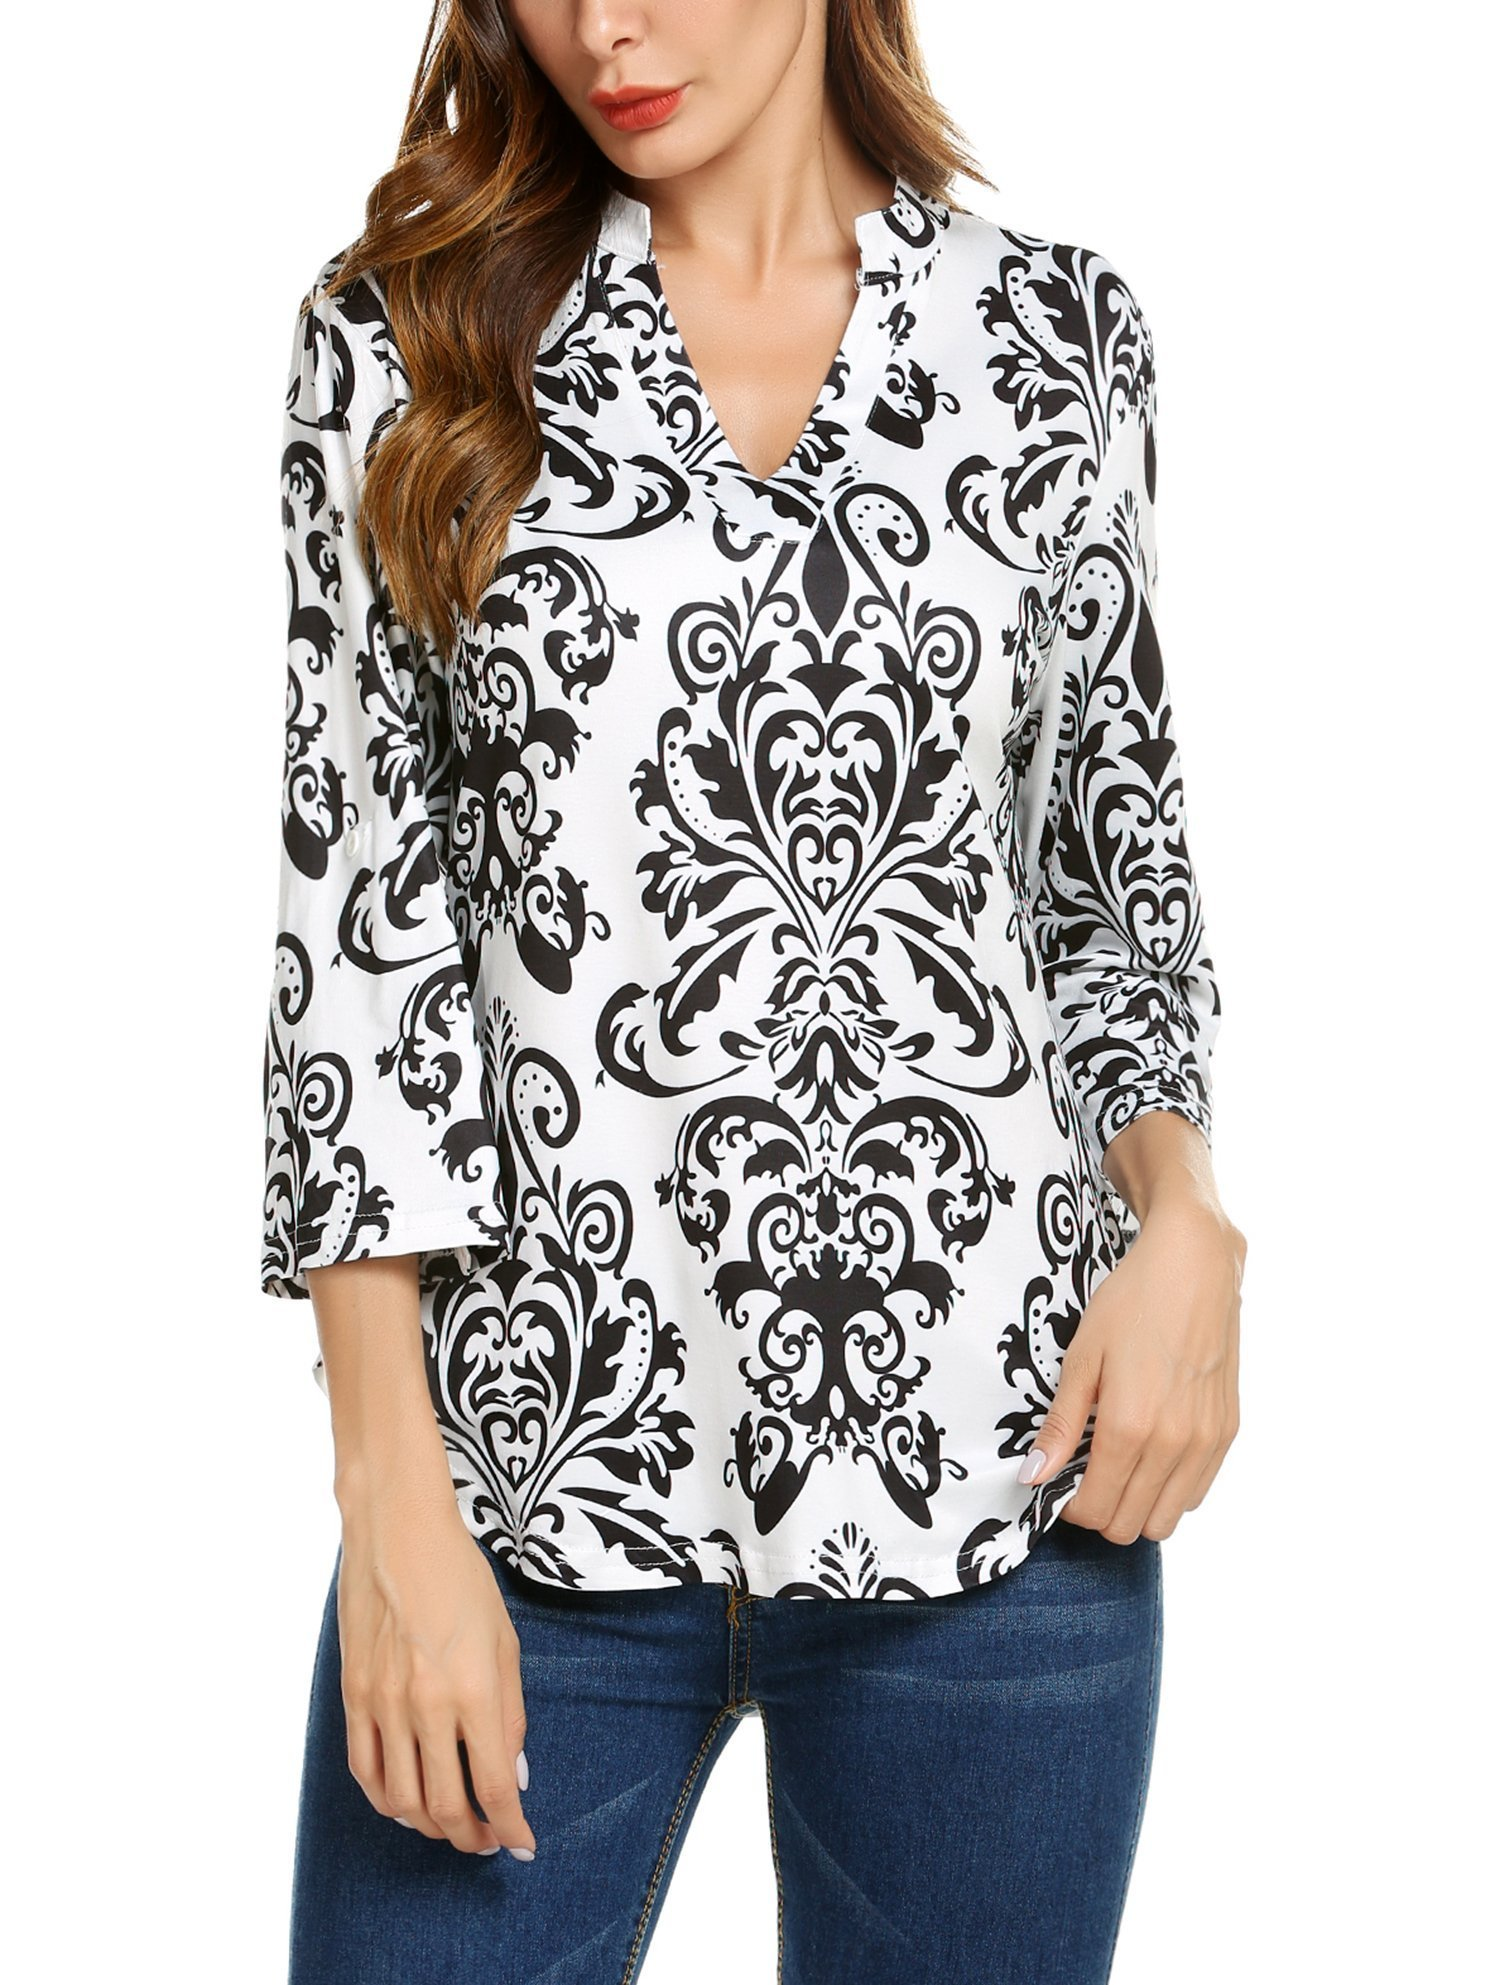 Hount Womens Casual V Neck Floral Top and Blouse Long Sleeve Tunic Shirt (X-Large, Black)